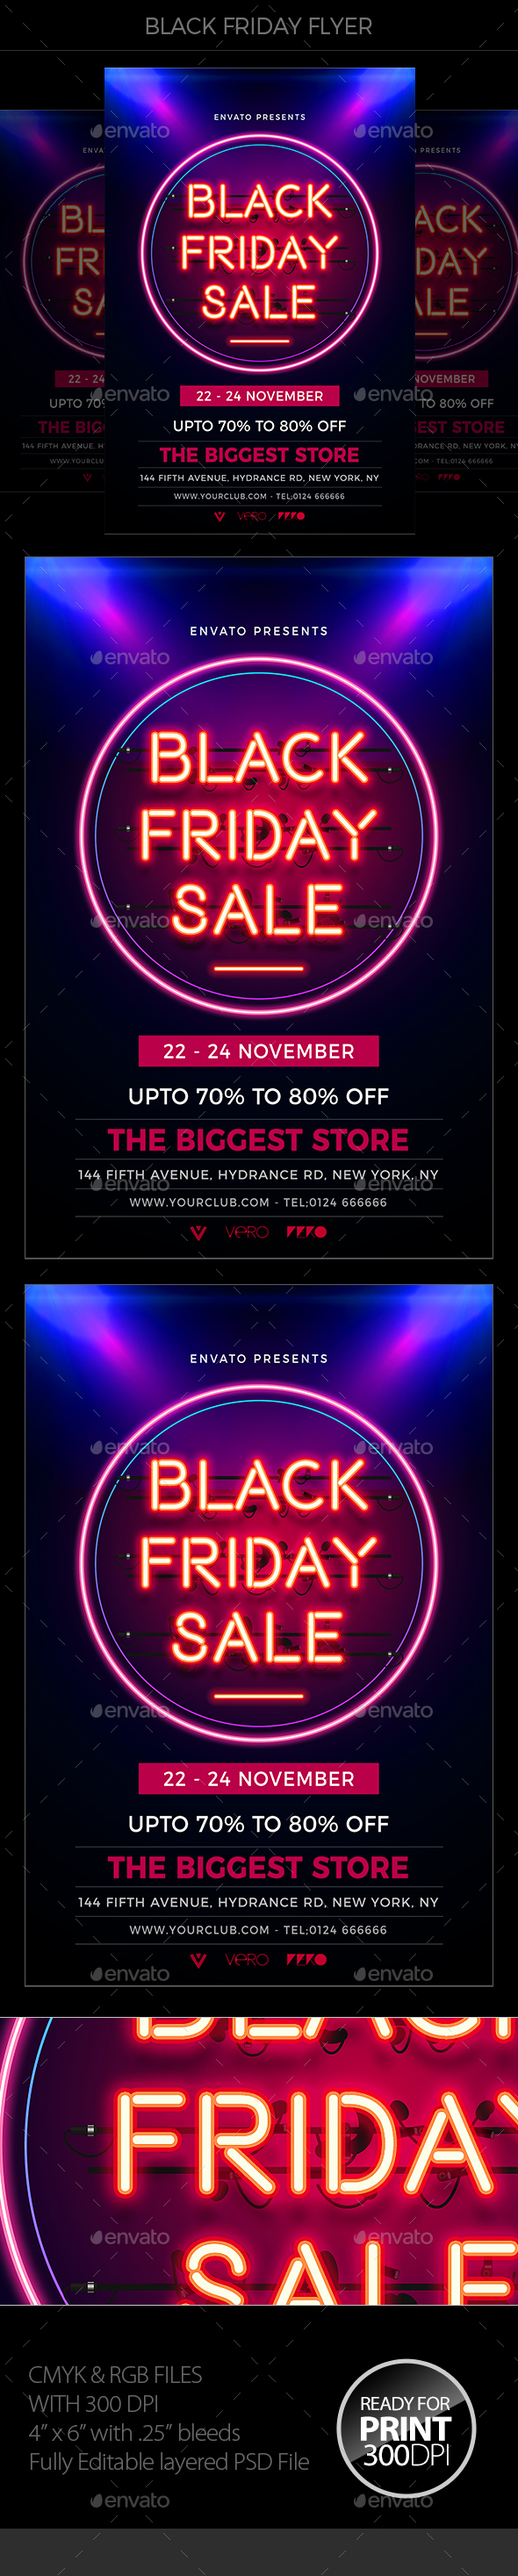 Black Friday Sale Flyer - Holidays Events